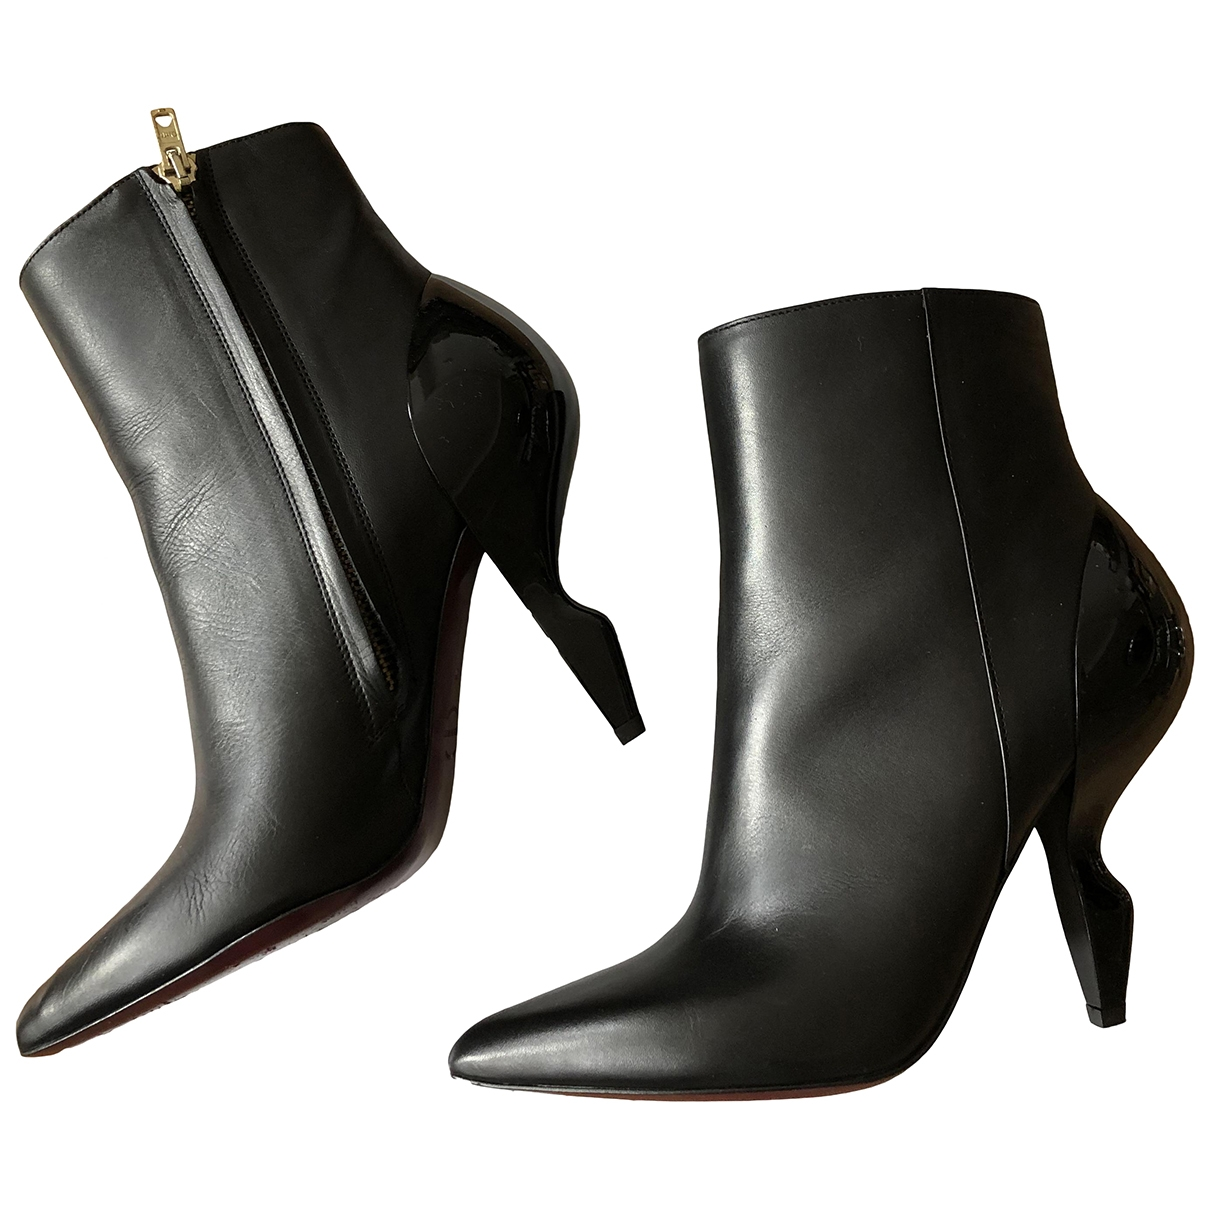 & Stories \N Black Leather Boots for Women 36 EU